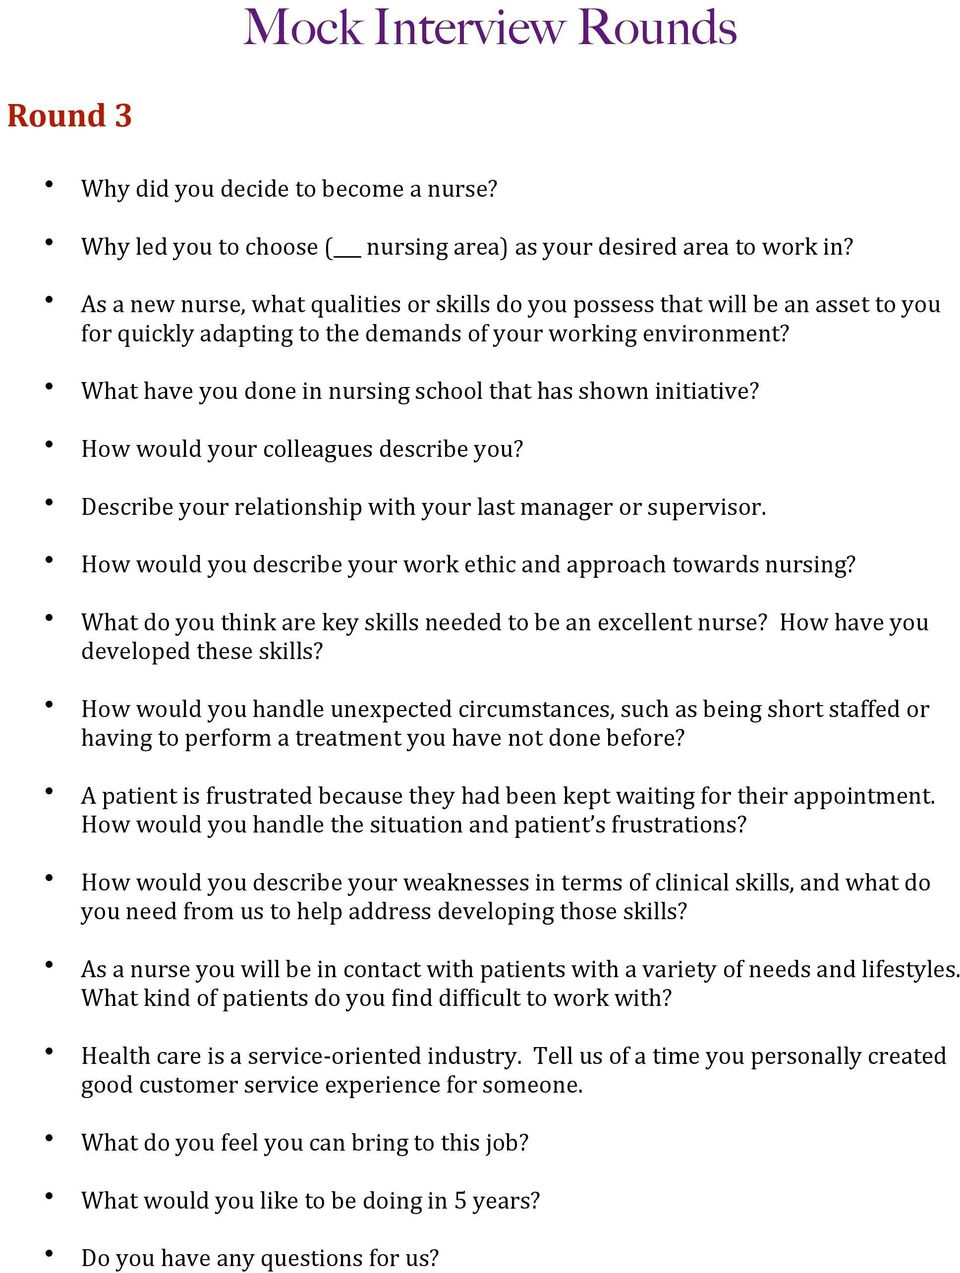 nursing interview success packet pdf what have you done in nursing school that has shown initiative how would your colleagues